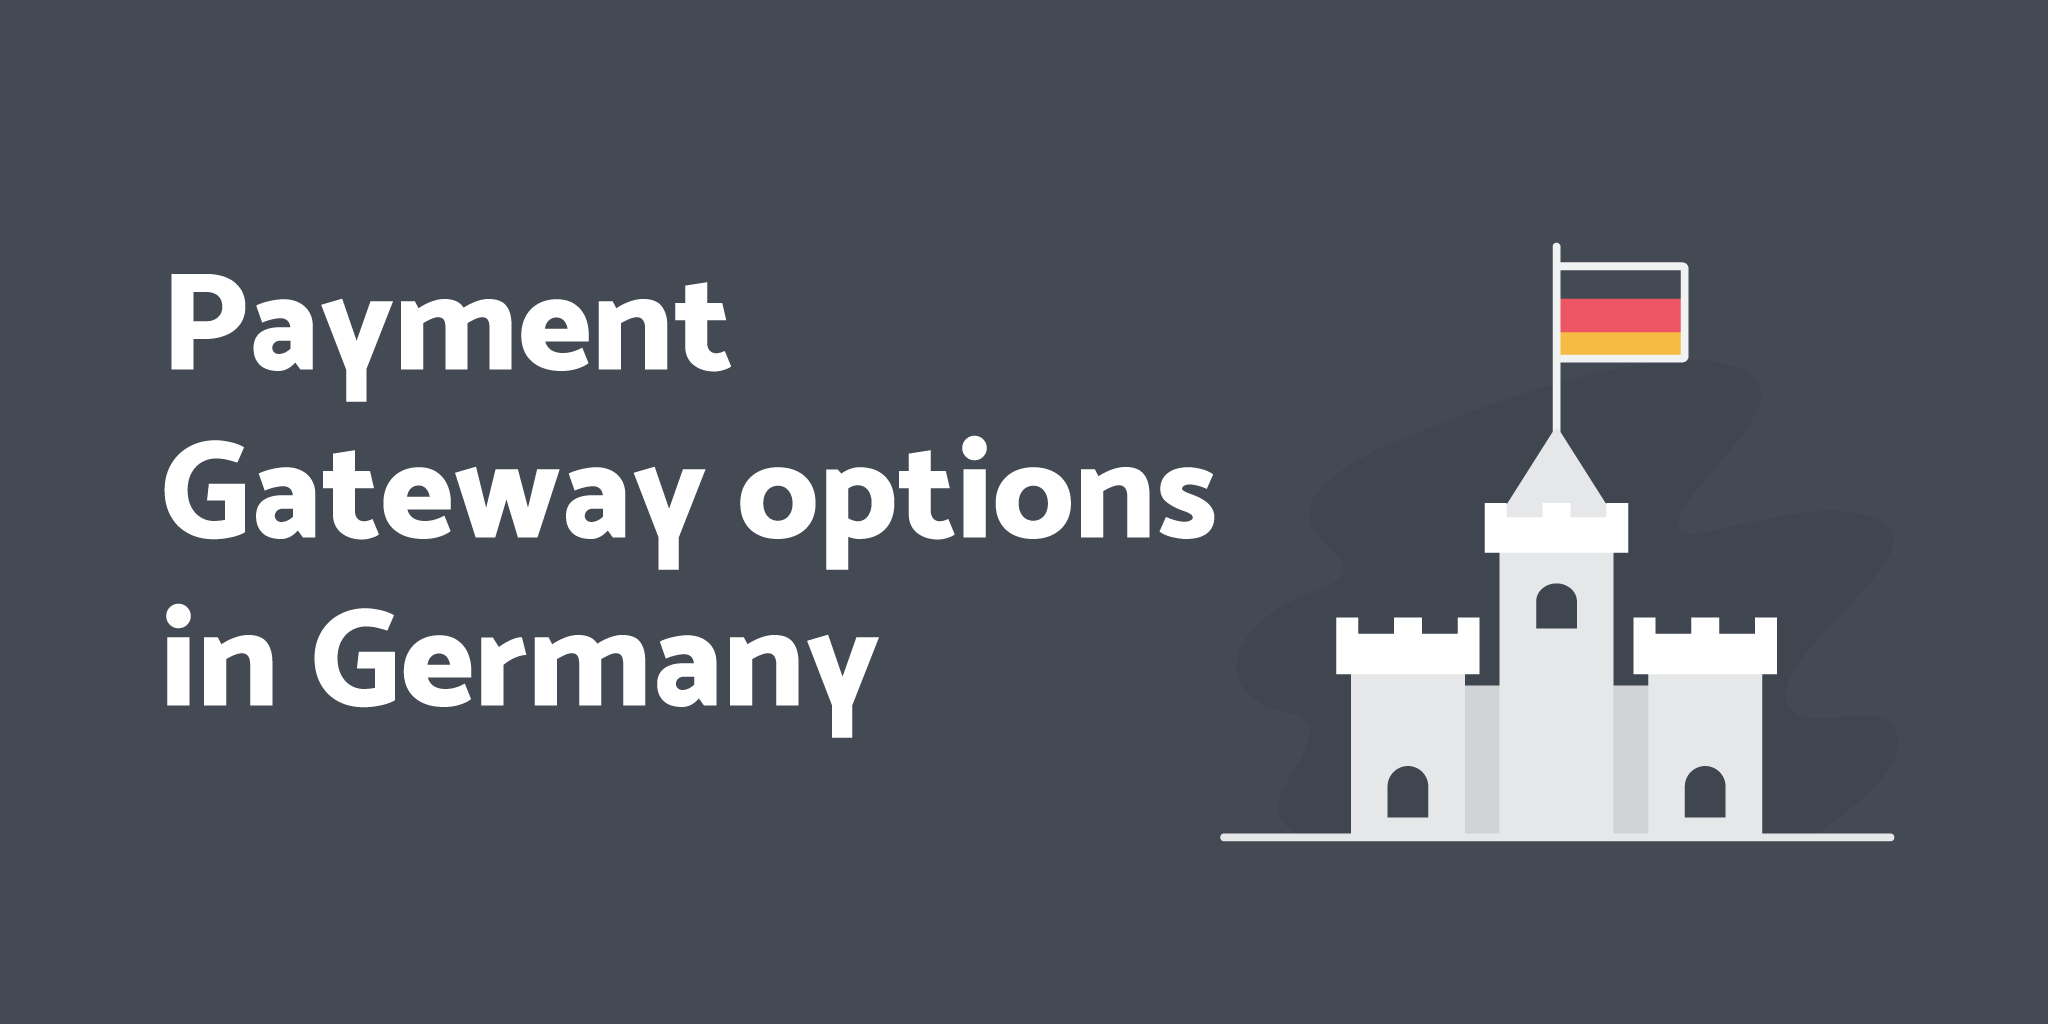 Payment Gateway Options in Germany